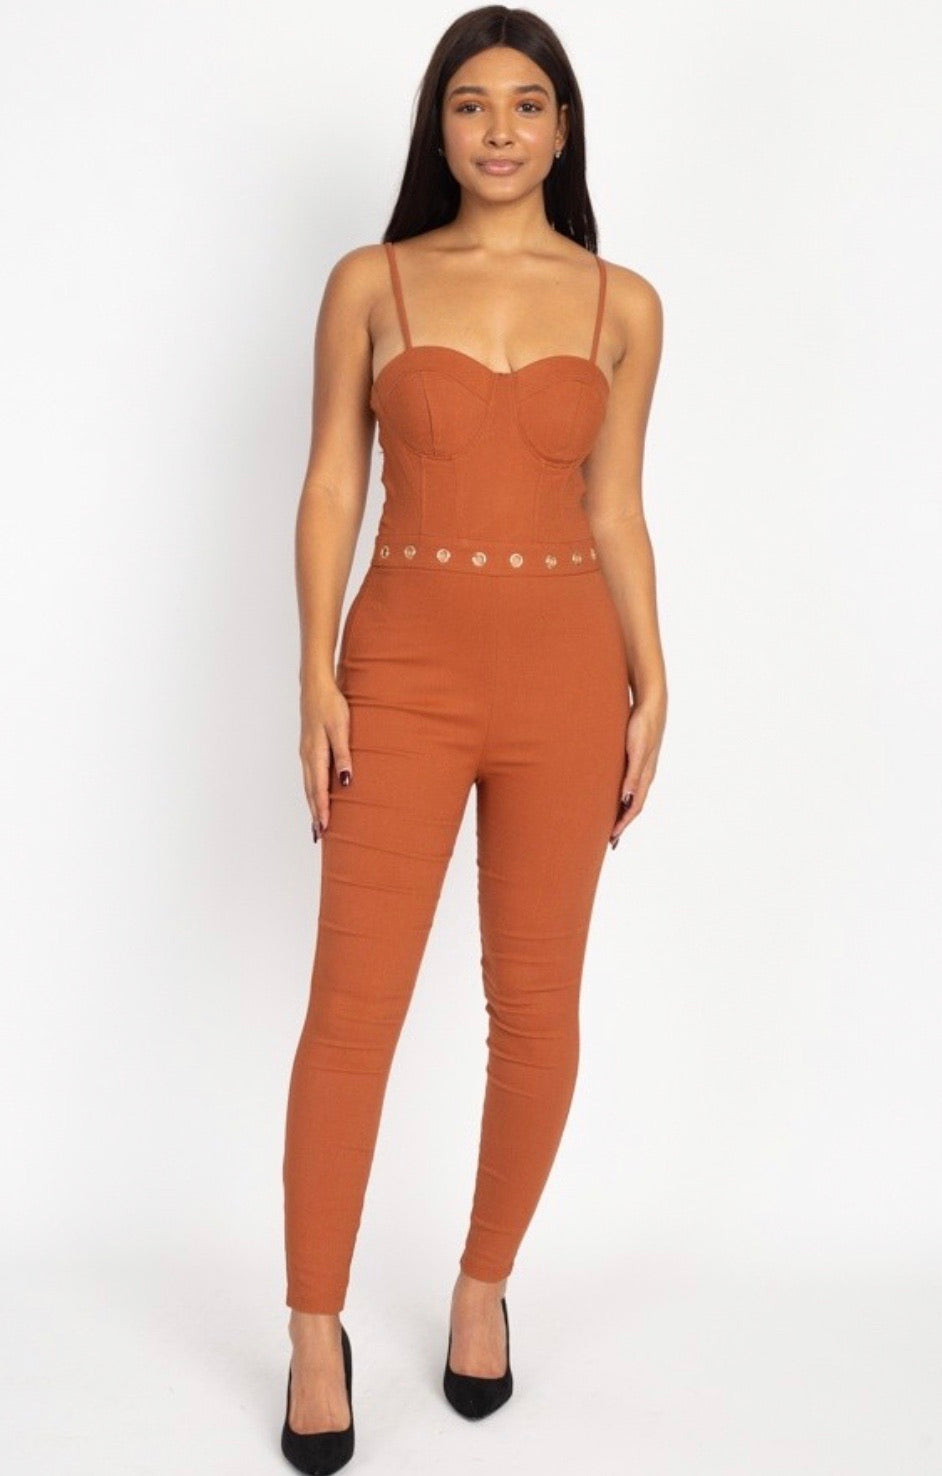 Bonnies Jumpsuit - The Divaz Closet